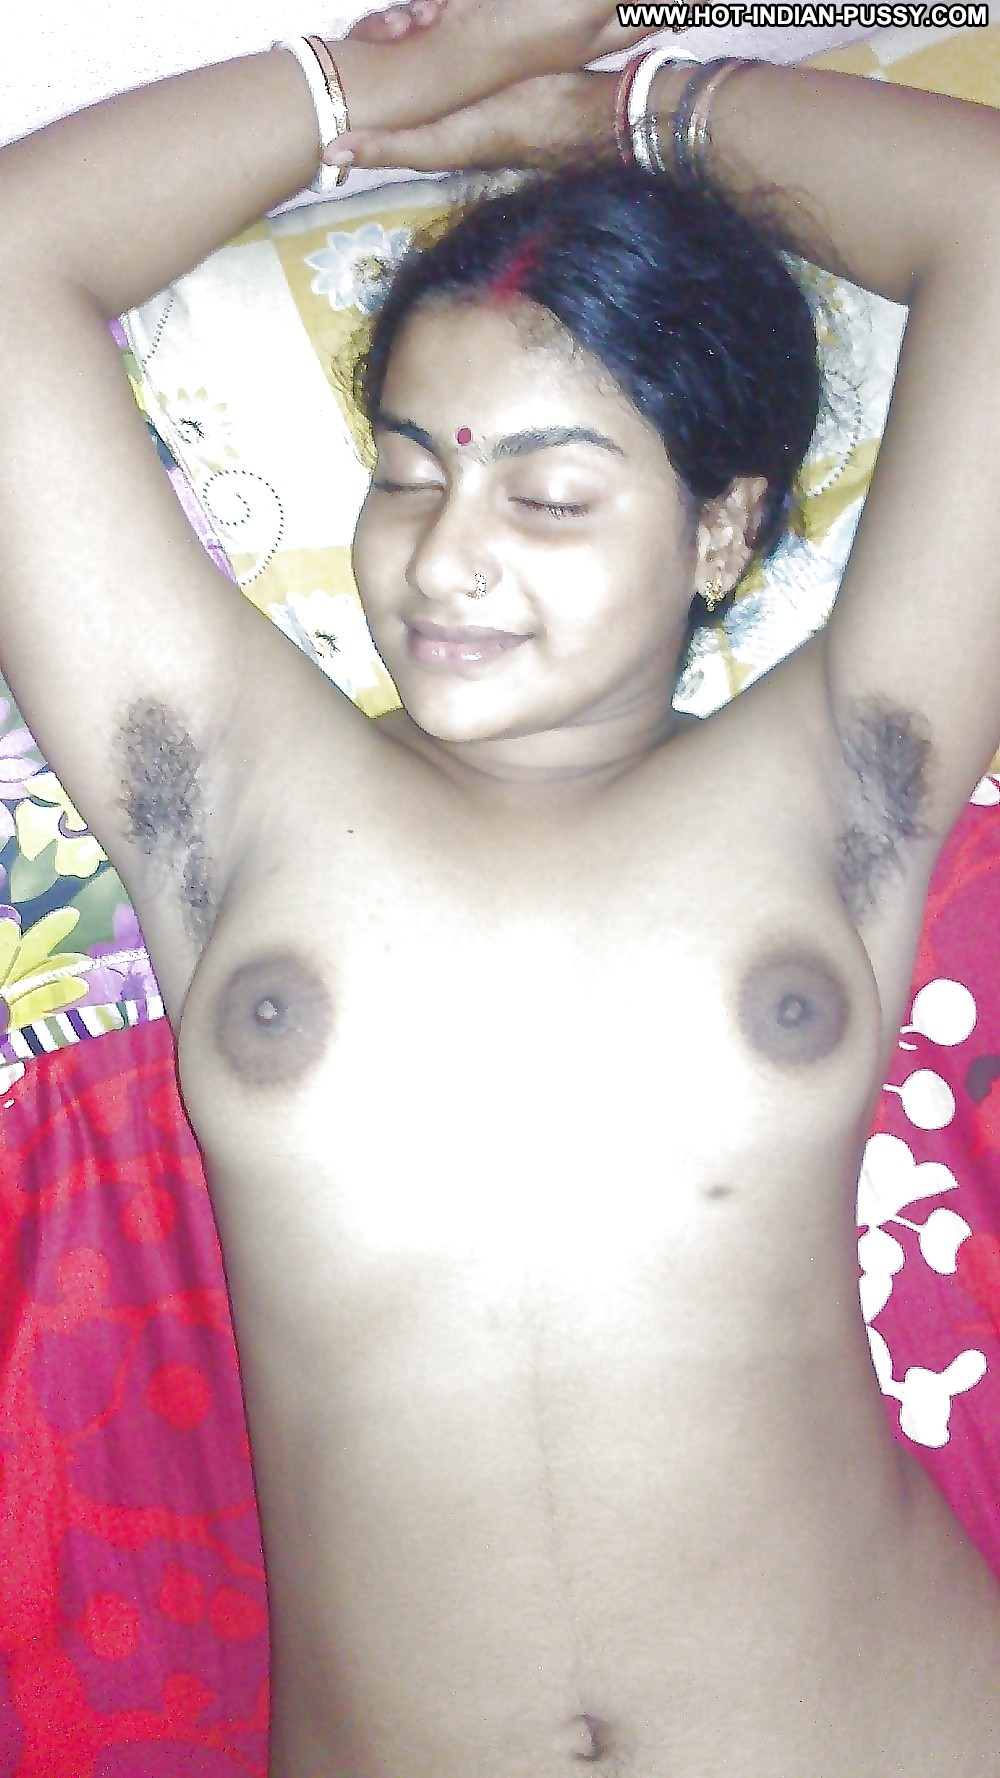 desi mom hot nude image